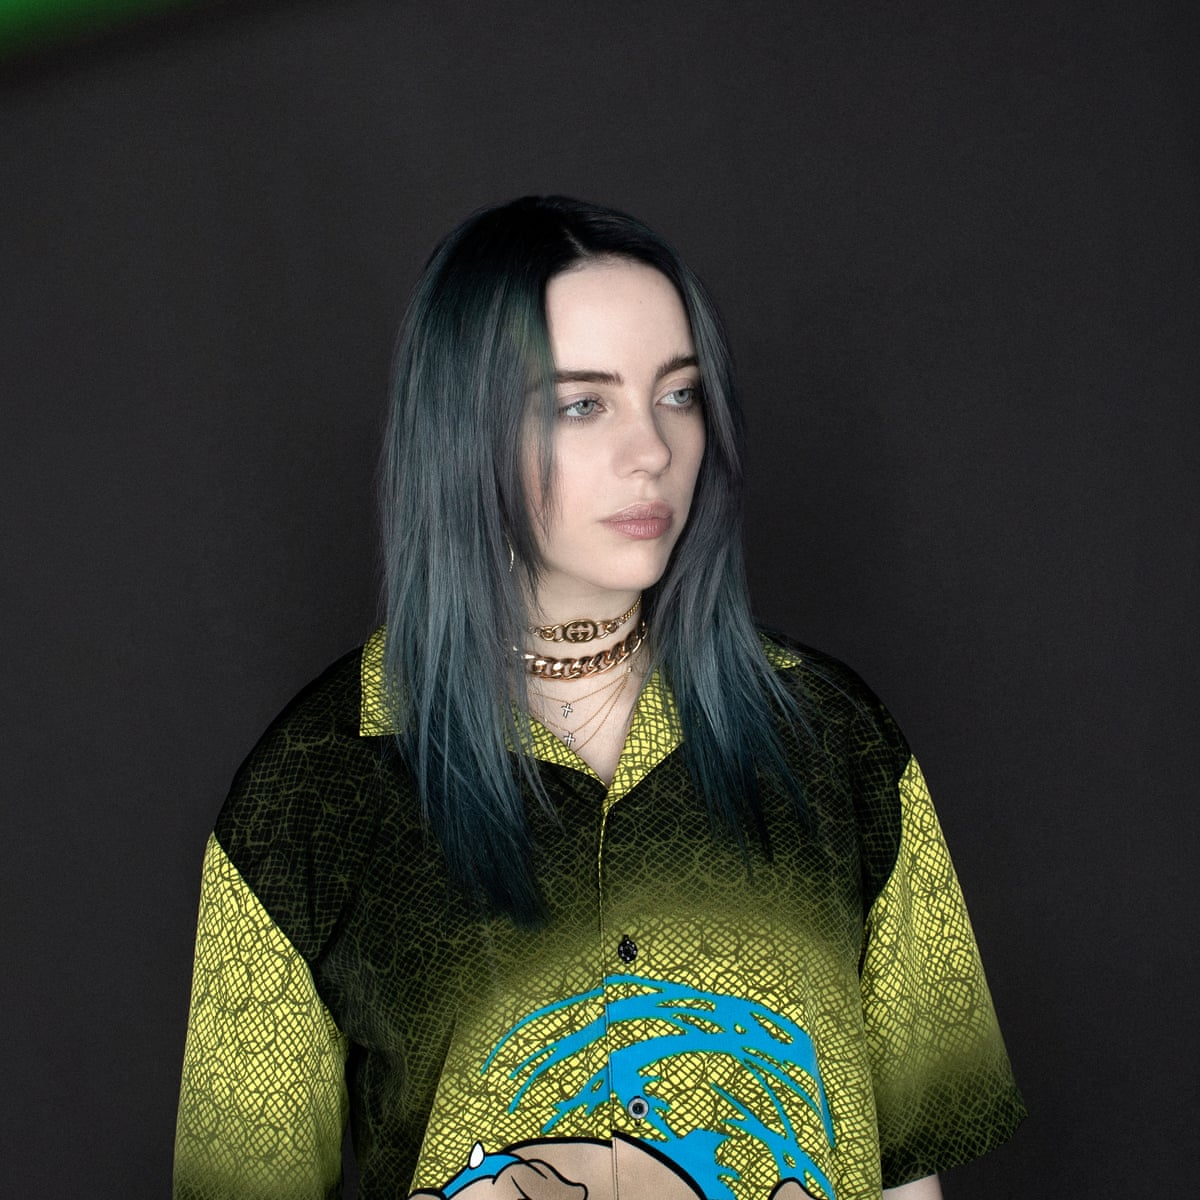 Billie Eilish The Pop Icon Who Defines 21st Century Teenage Angst Music The Guardian